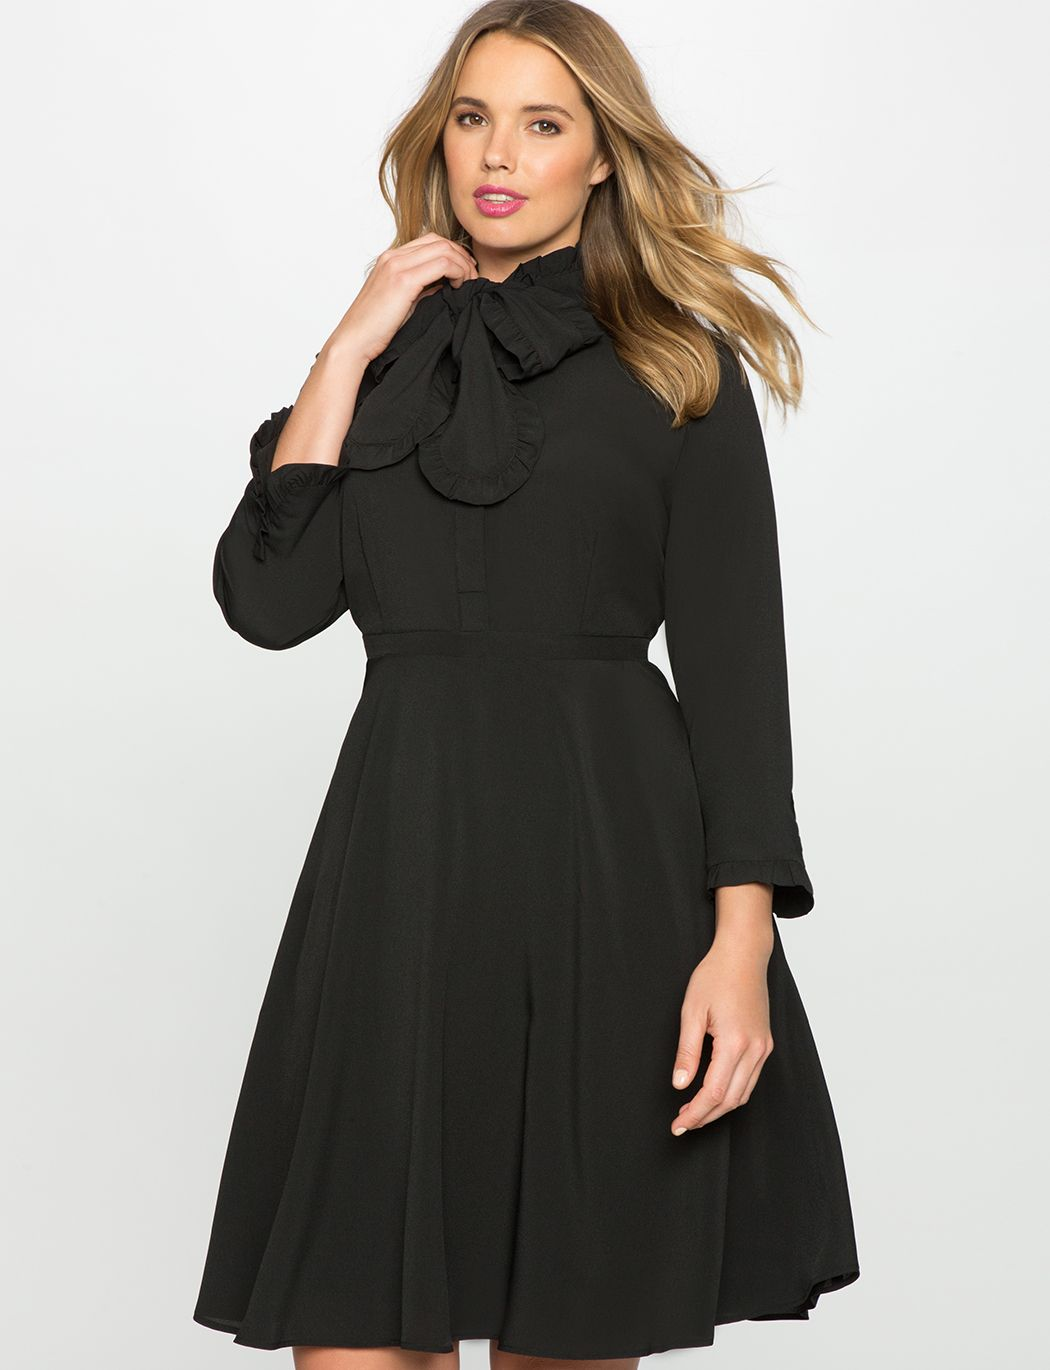 Bow neck fit and flare shirt dress womens plus size